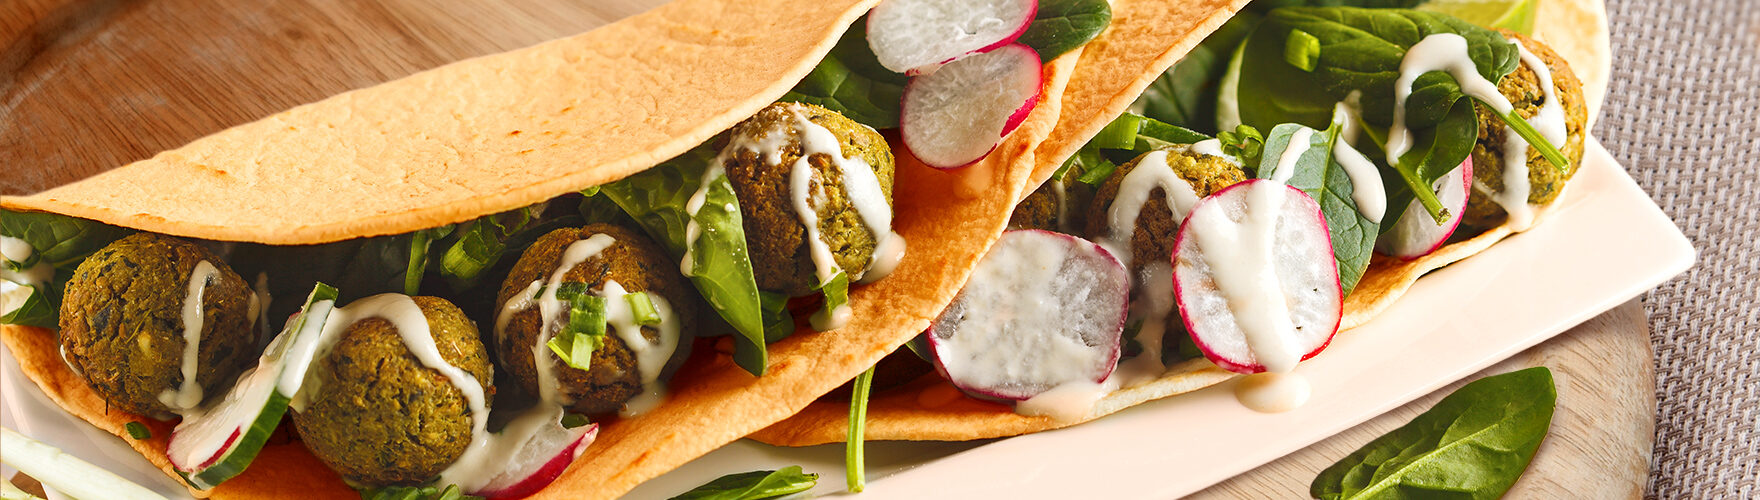 Wrap with falafel, spinach and radishes